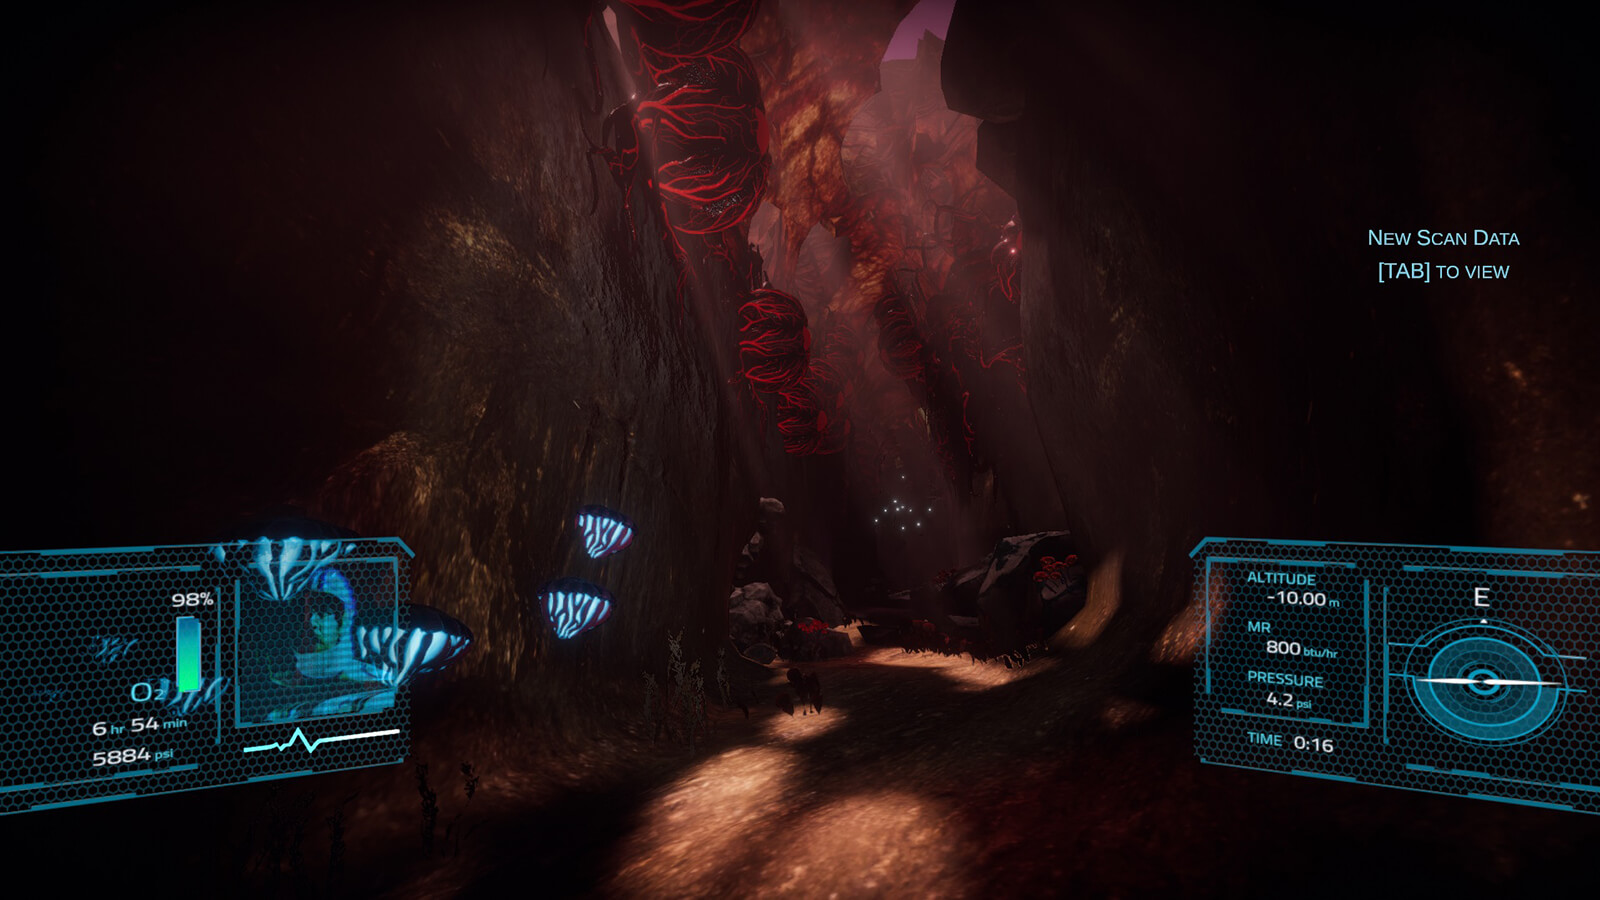 An alien cavern with glowing blue mushrooms, red growths, and the player's HUD layered on top.